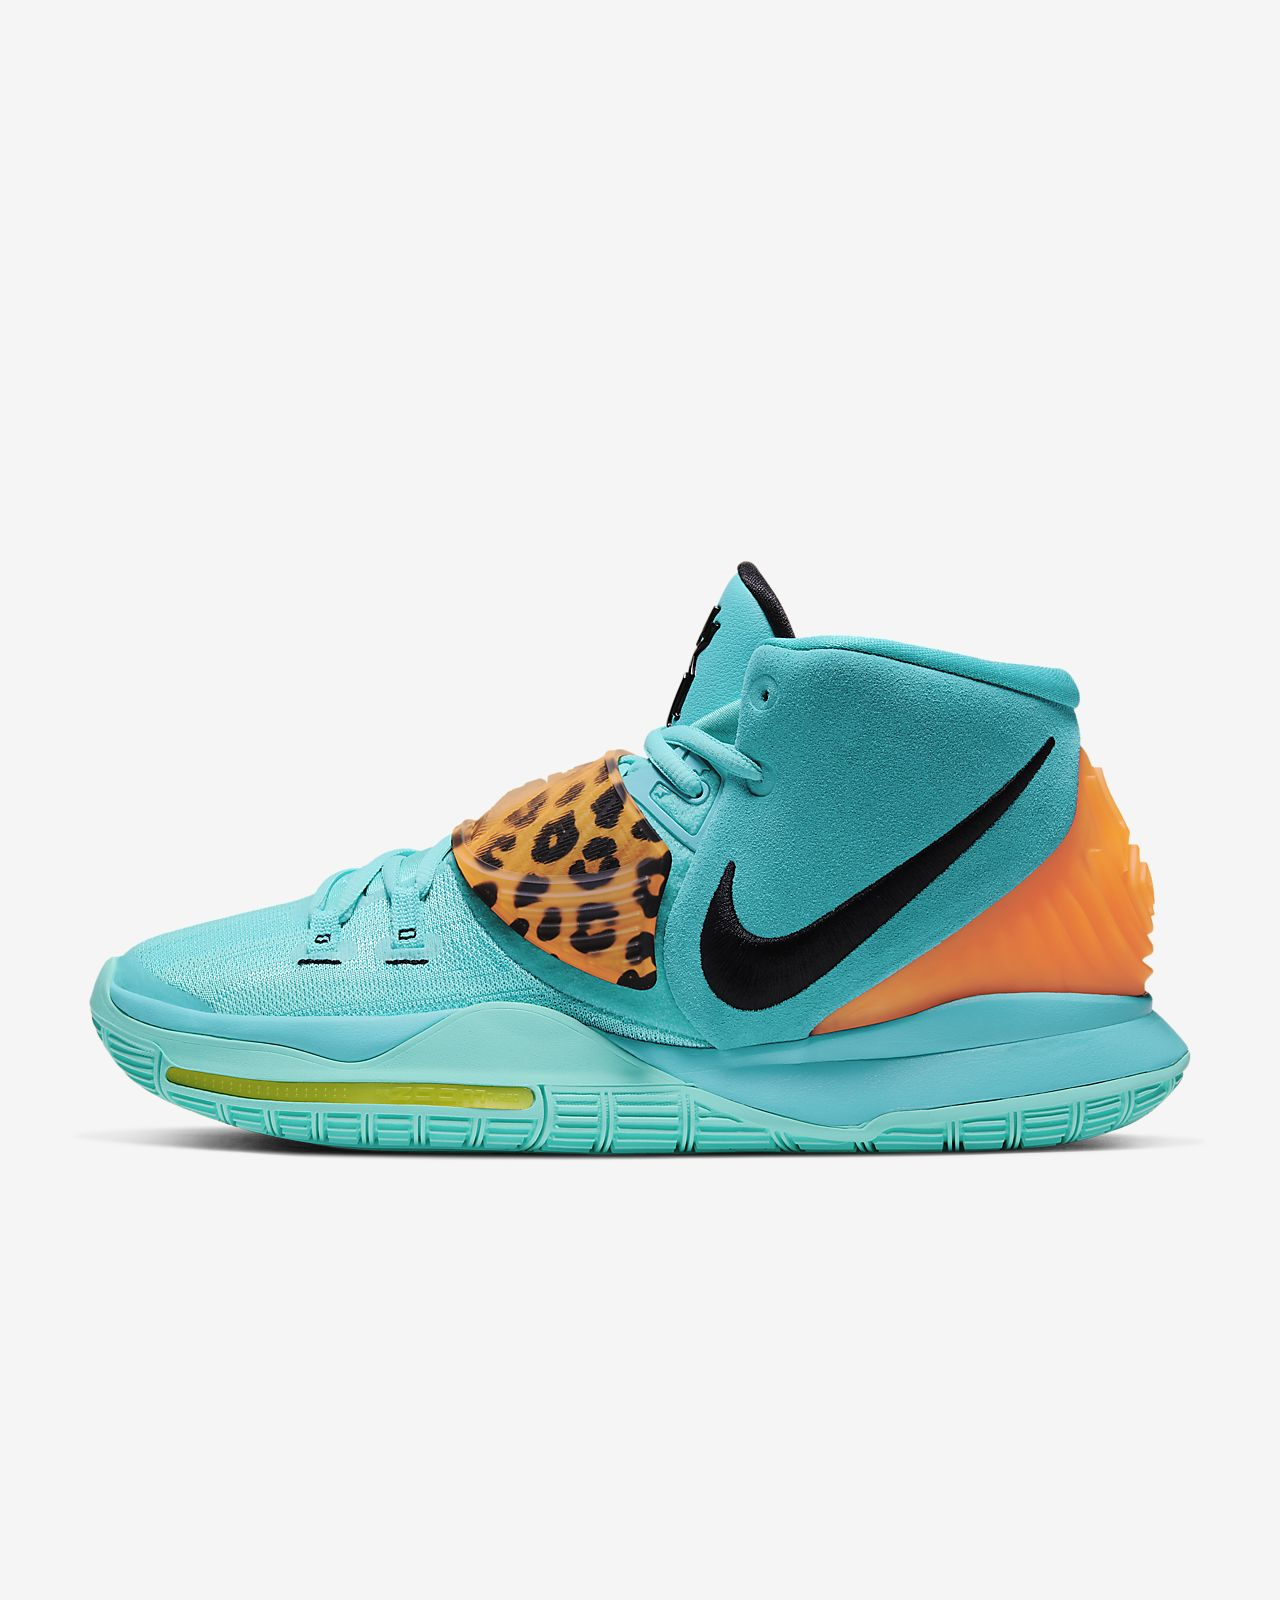 Nike Kyrie 6 Homme Chaussures